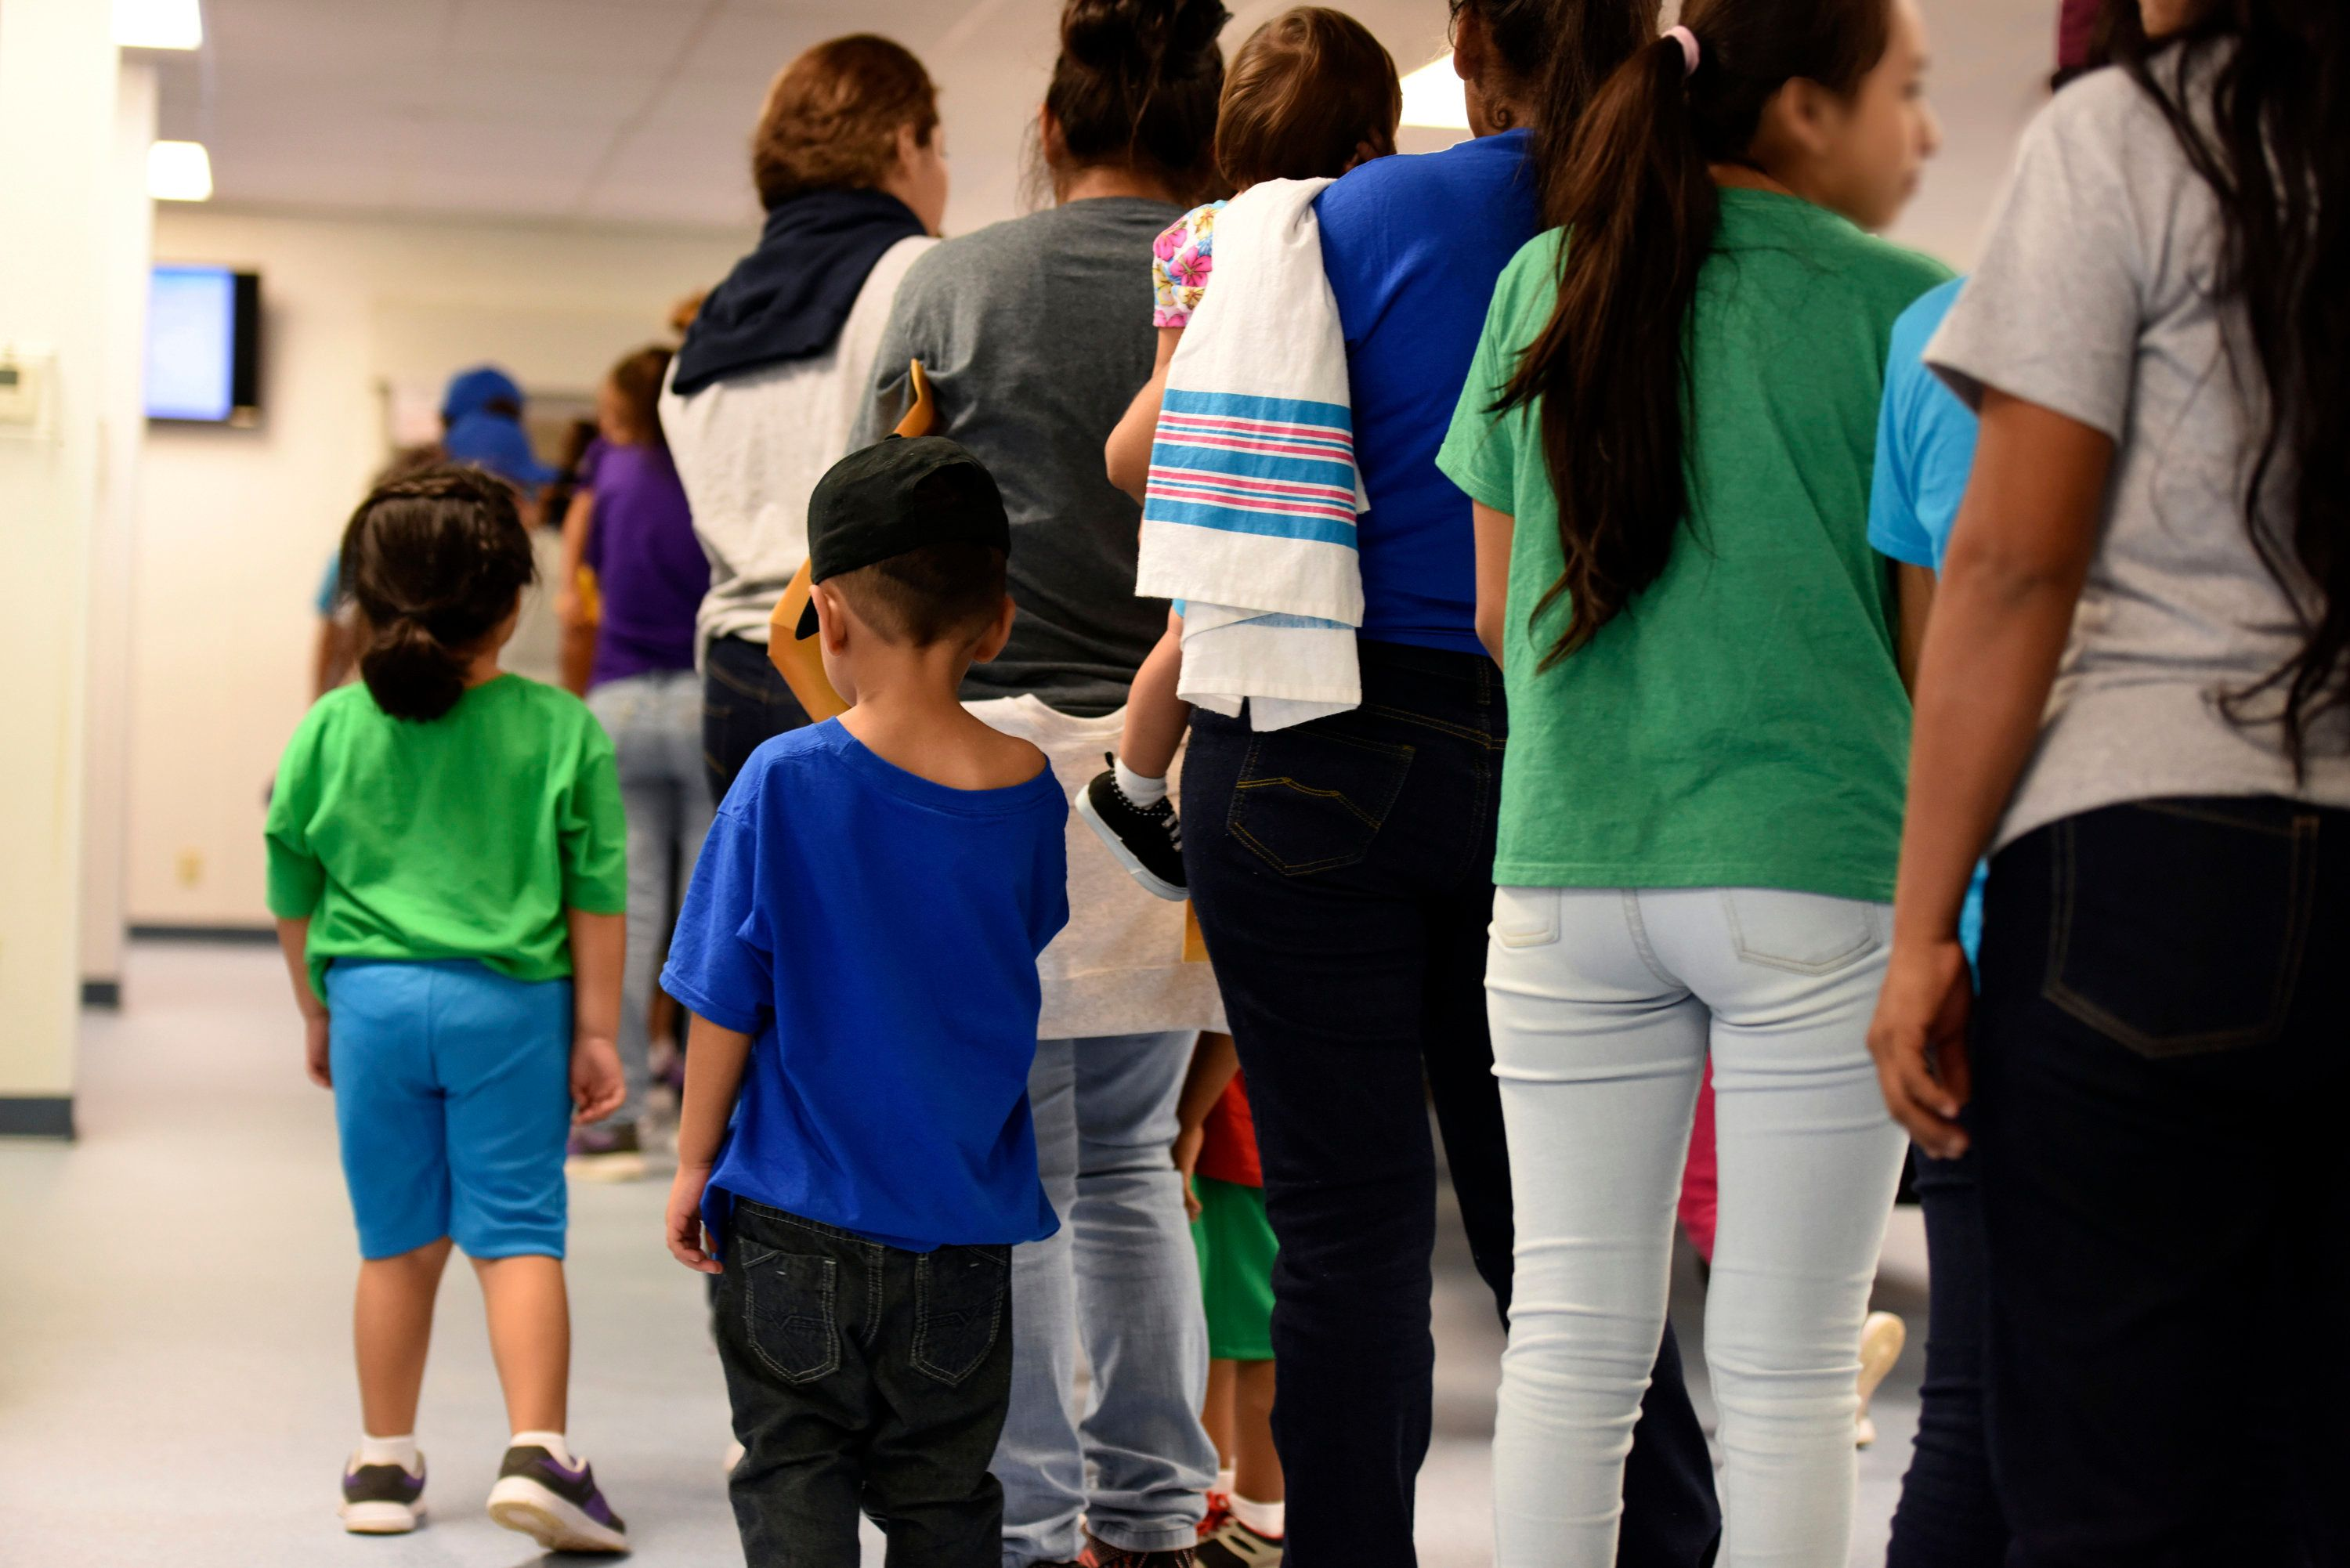 ICE Is Illegally Detaining Kids As Young As 5, Who Are Suffering 'Horrendous' Effects